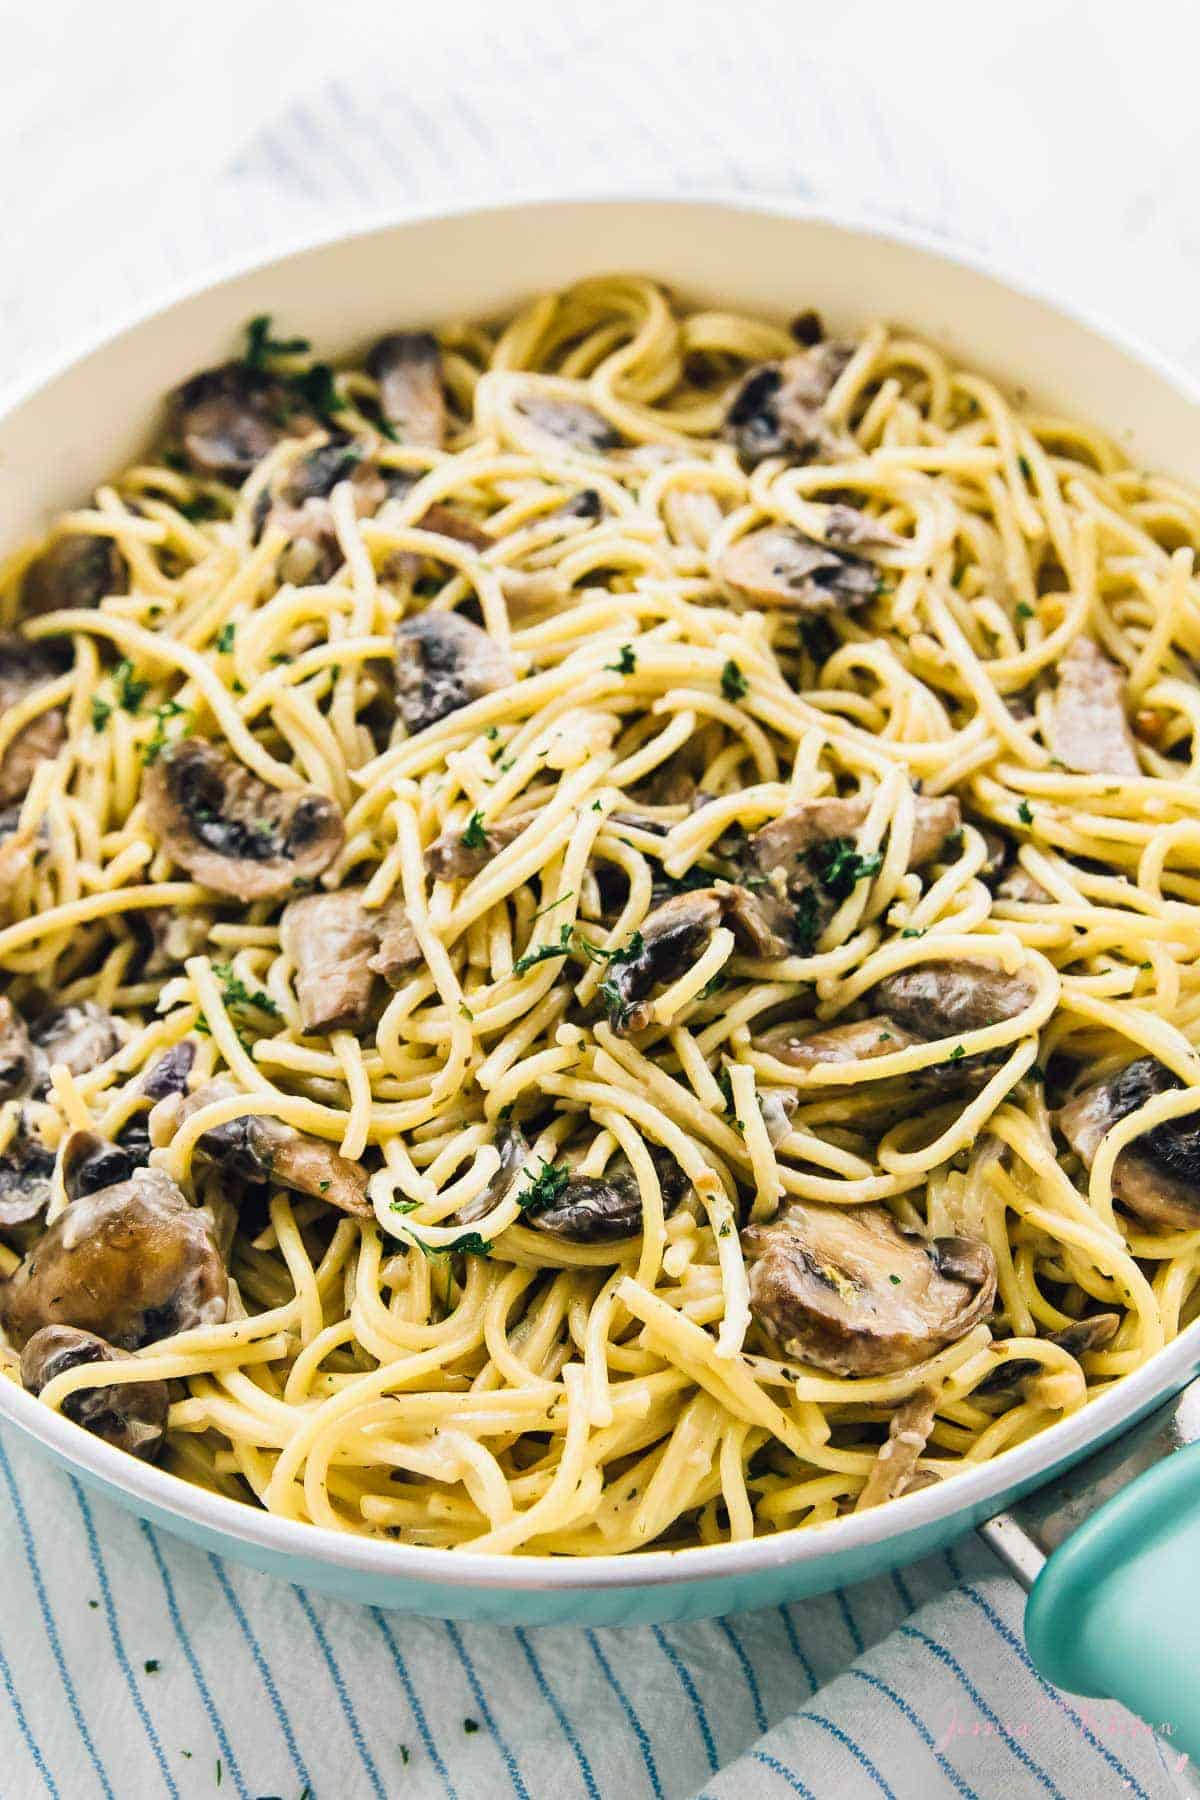 This Creamy Garlic Mushroom Pasta is done in just 30 minutes! It's absolutely mouthwatering, so easy to make, and makes tons of servings!